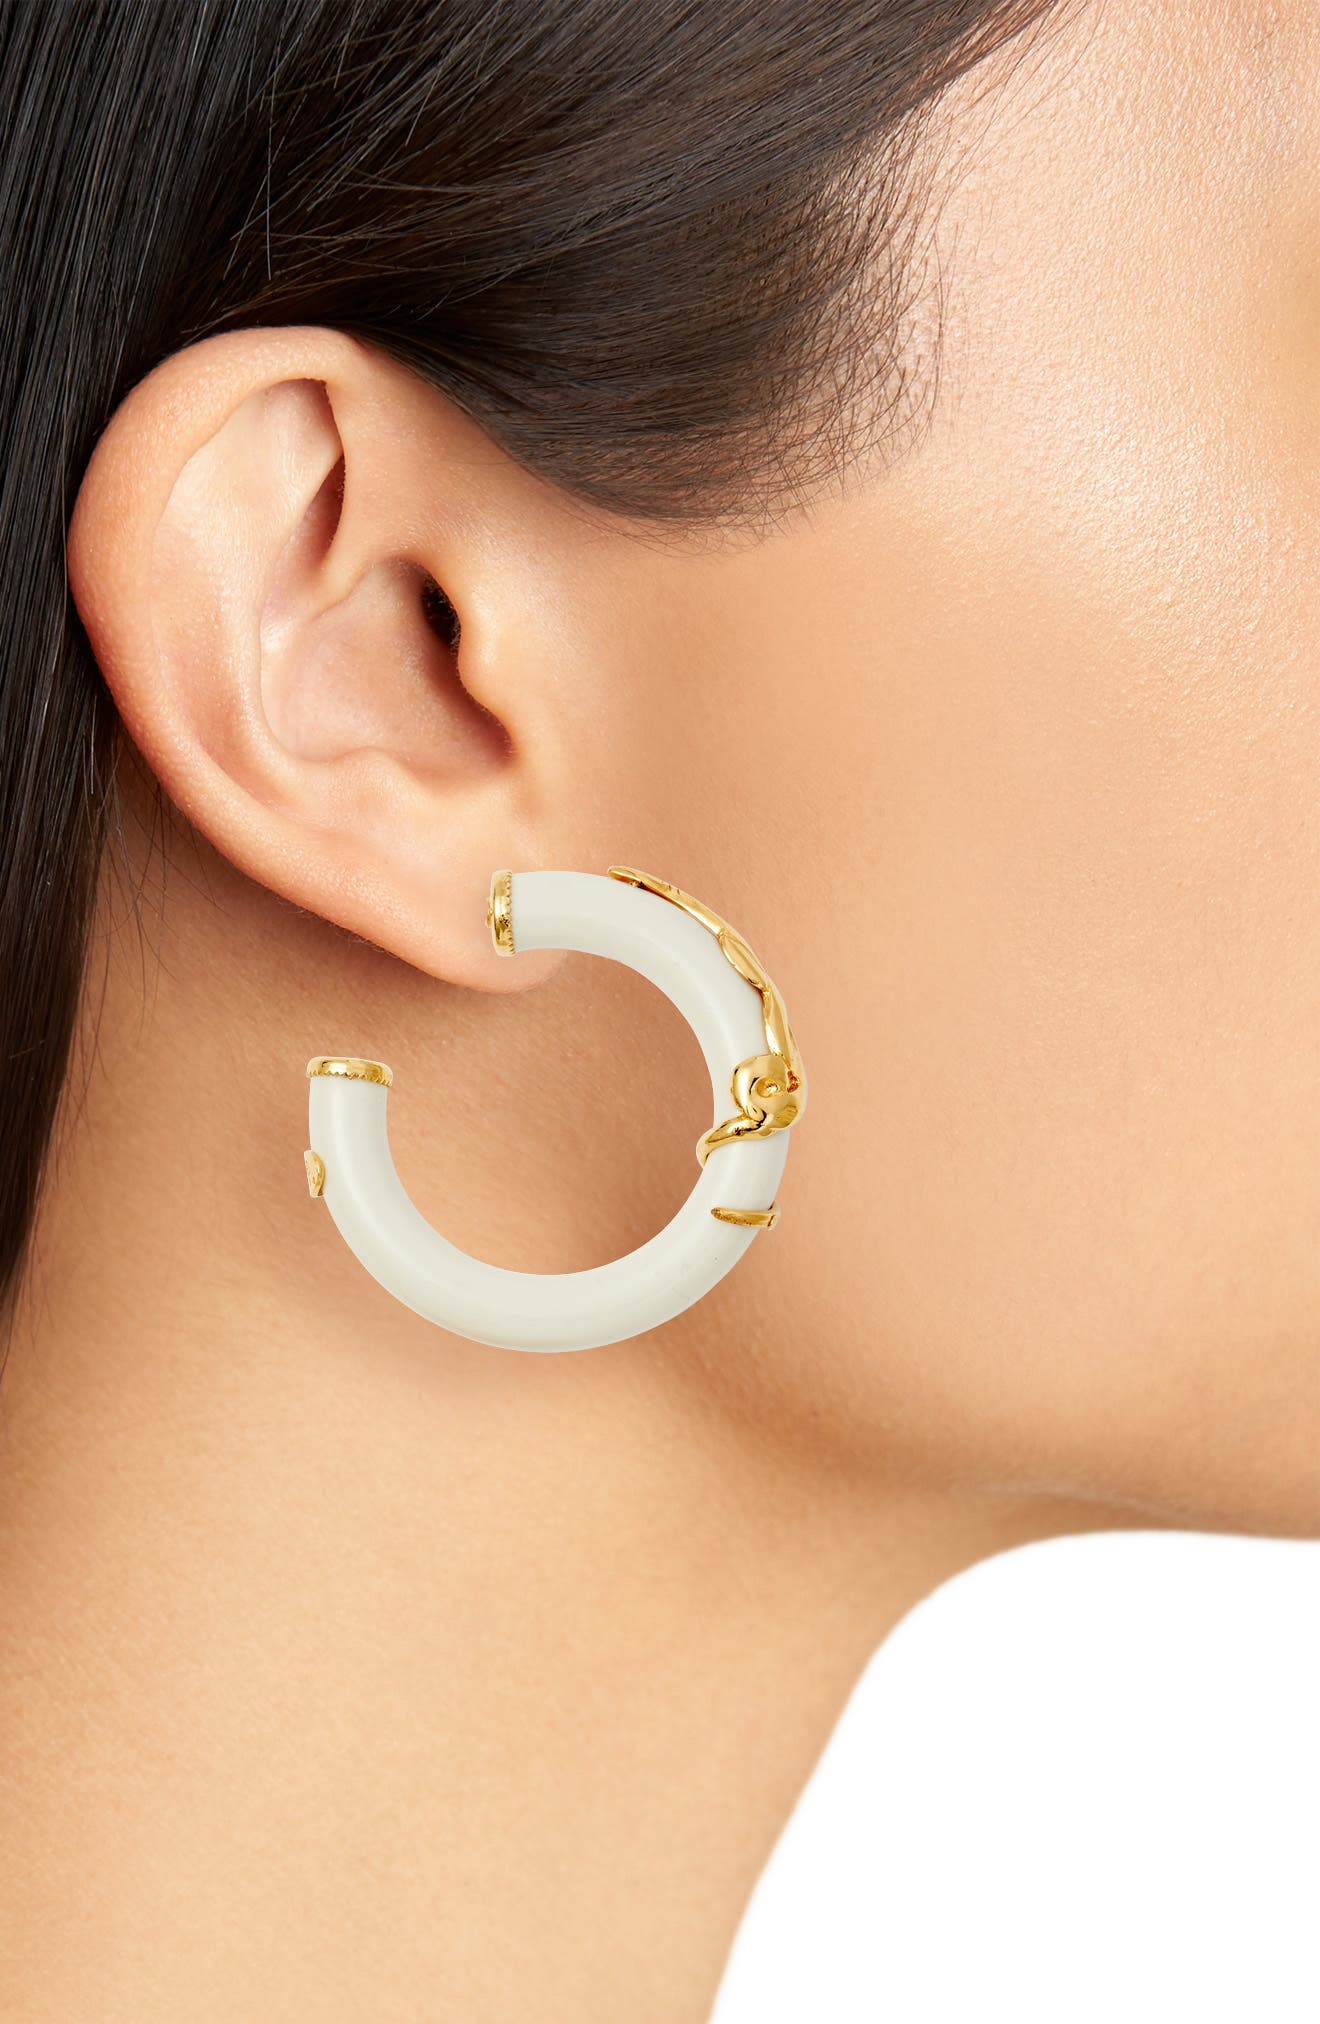 Cobra Hoop Earrings,                             Alternate thumbnail 2, color,                             White/ Gold